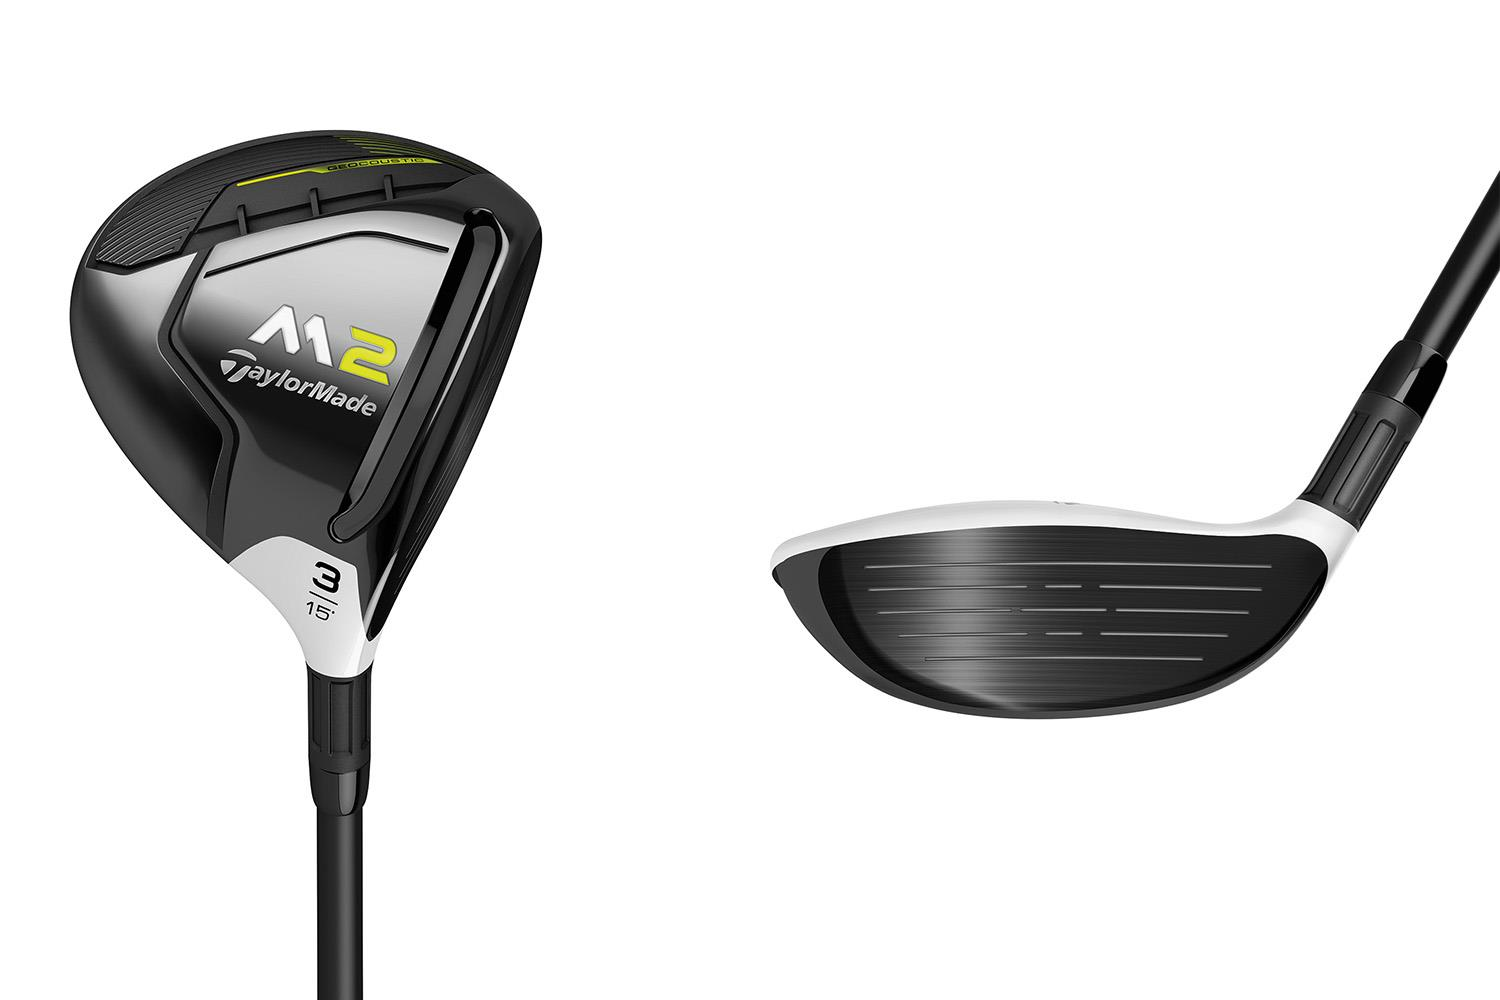 TaylorMade reveal new M2 woods